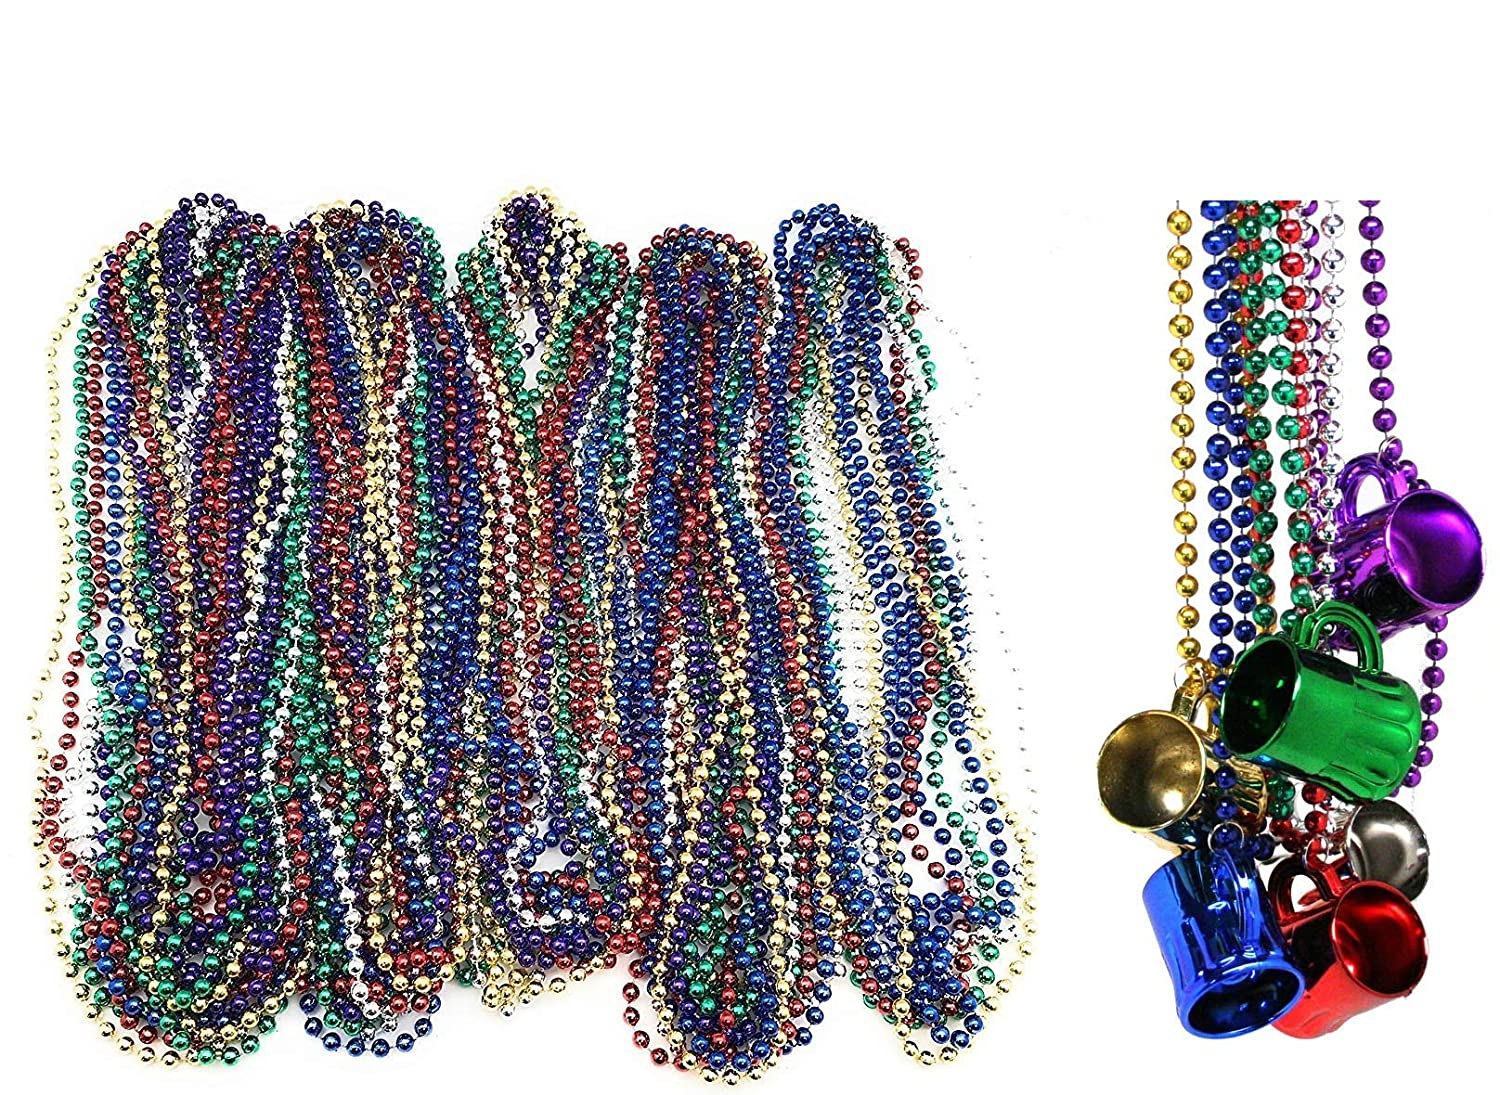 10 MARDI GRAS BEADS NECKLACES MOTORCYCLE BIKE RALLY THROW BEAD BIRTHDAY PARTY